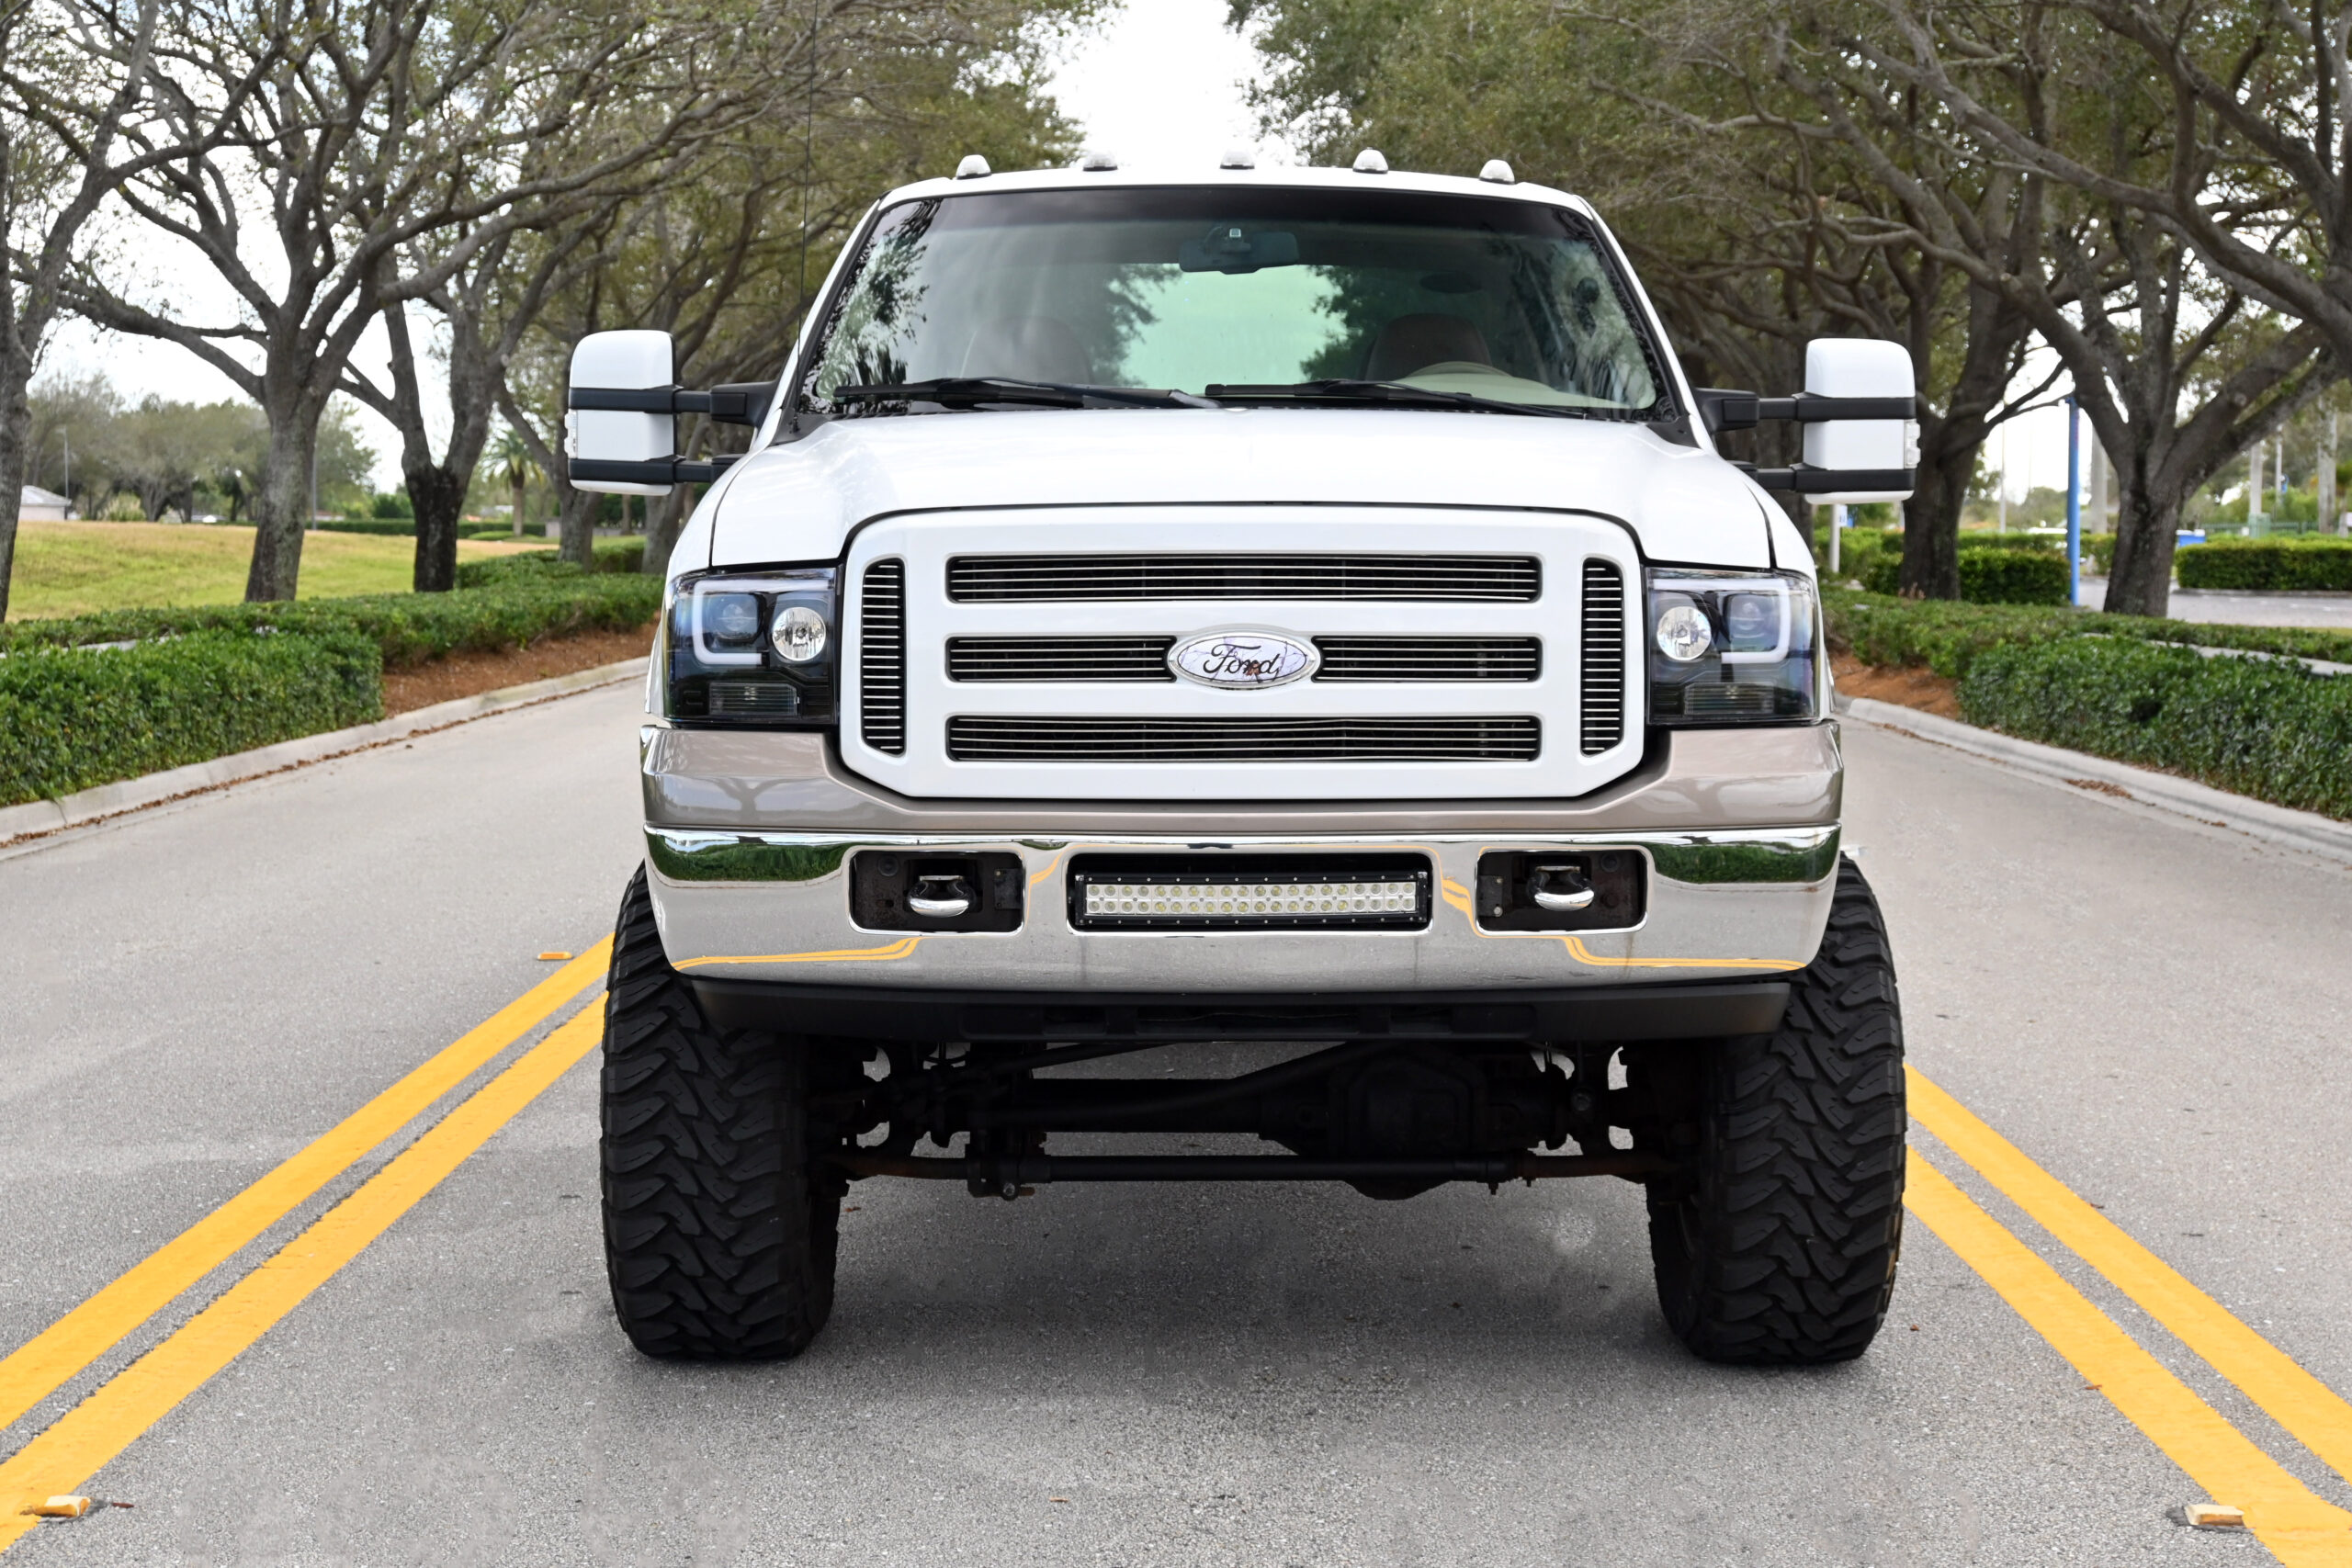 2006 Ford F250 4×4 Super Duty, Crew Cab, King Ranch, low miles, 6 Inch Lift, 37 inch tires